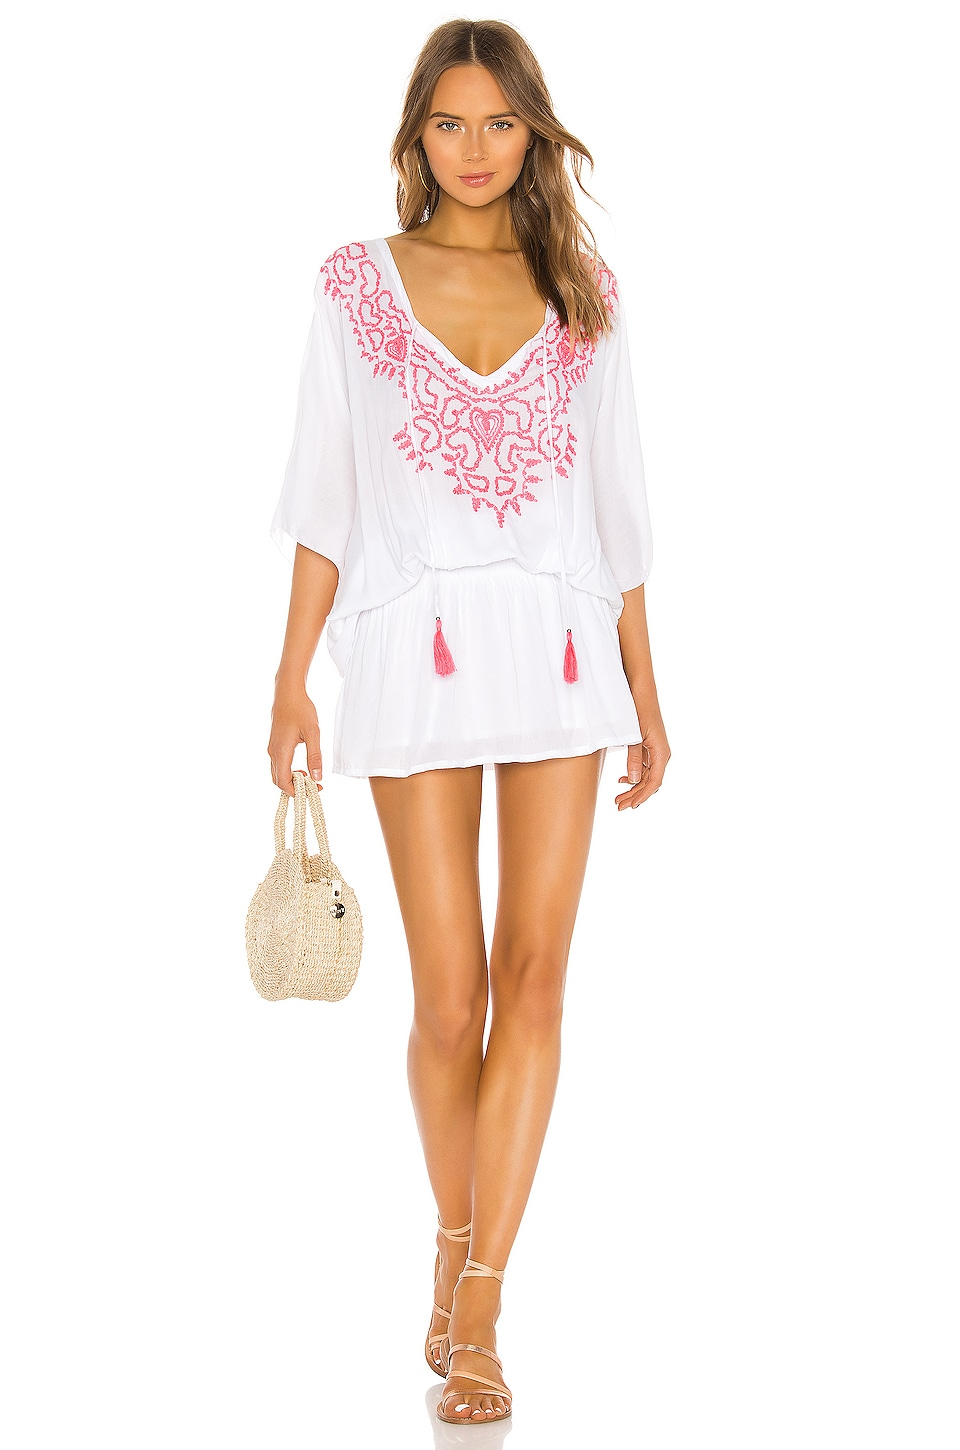 Tiare Hawaii Margarita Dress in White & Hot Pink Embroidery